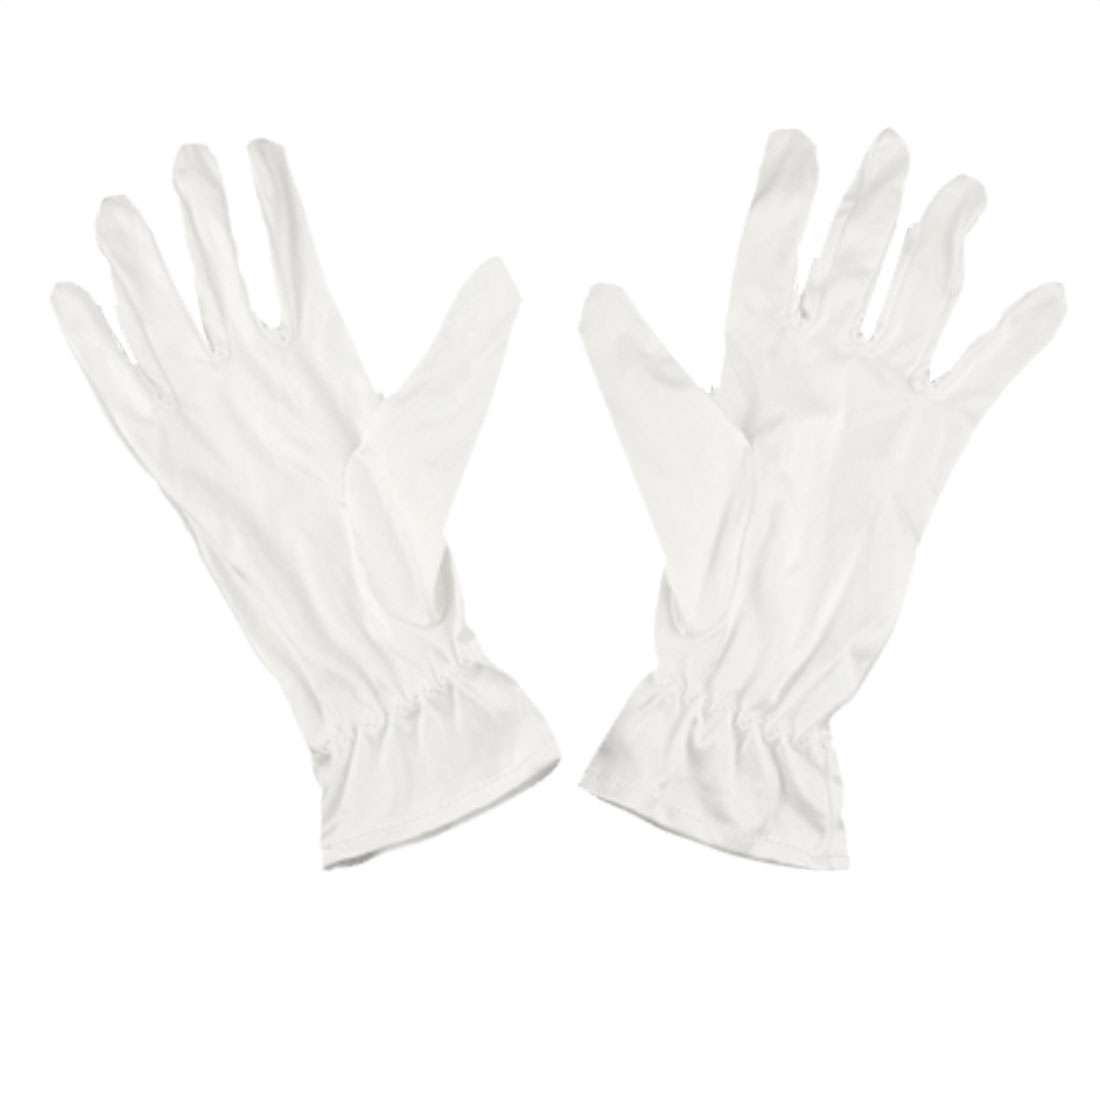 Pair Elastic Clean Room Dust Proof Full Fingers Working Work Gloves